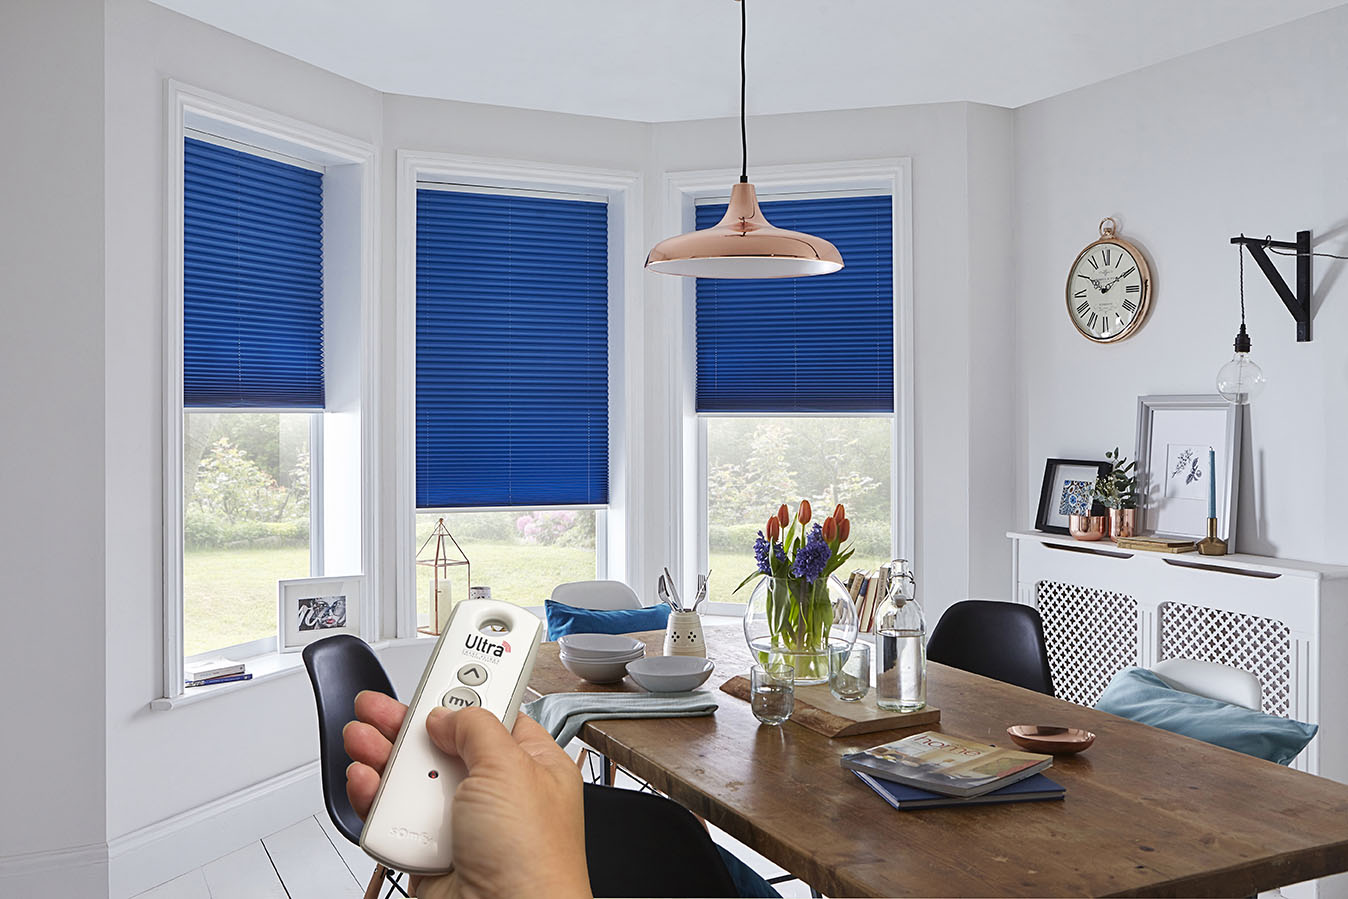 Automatic Ultra Smart Window Blinds